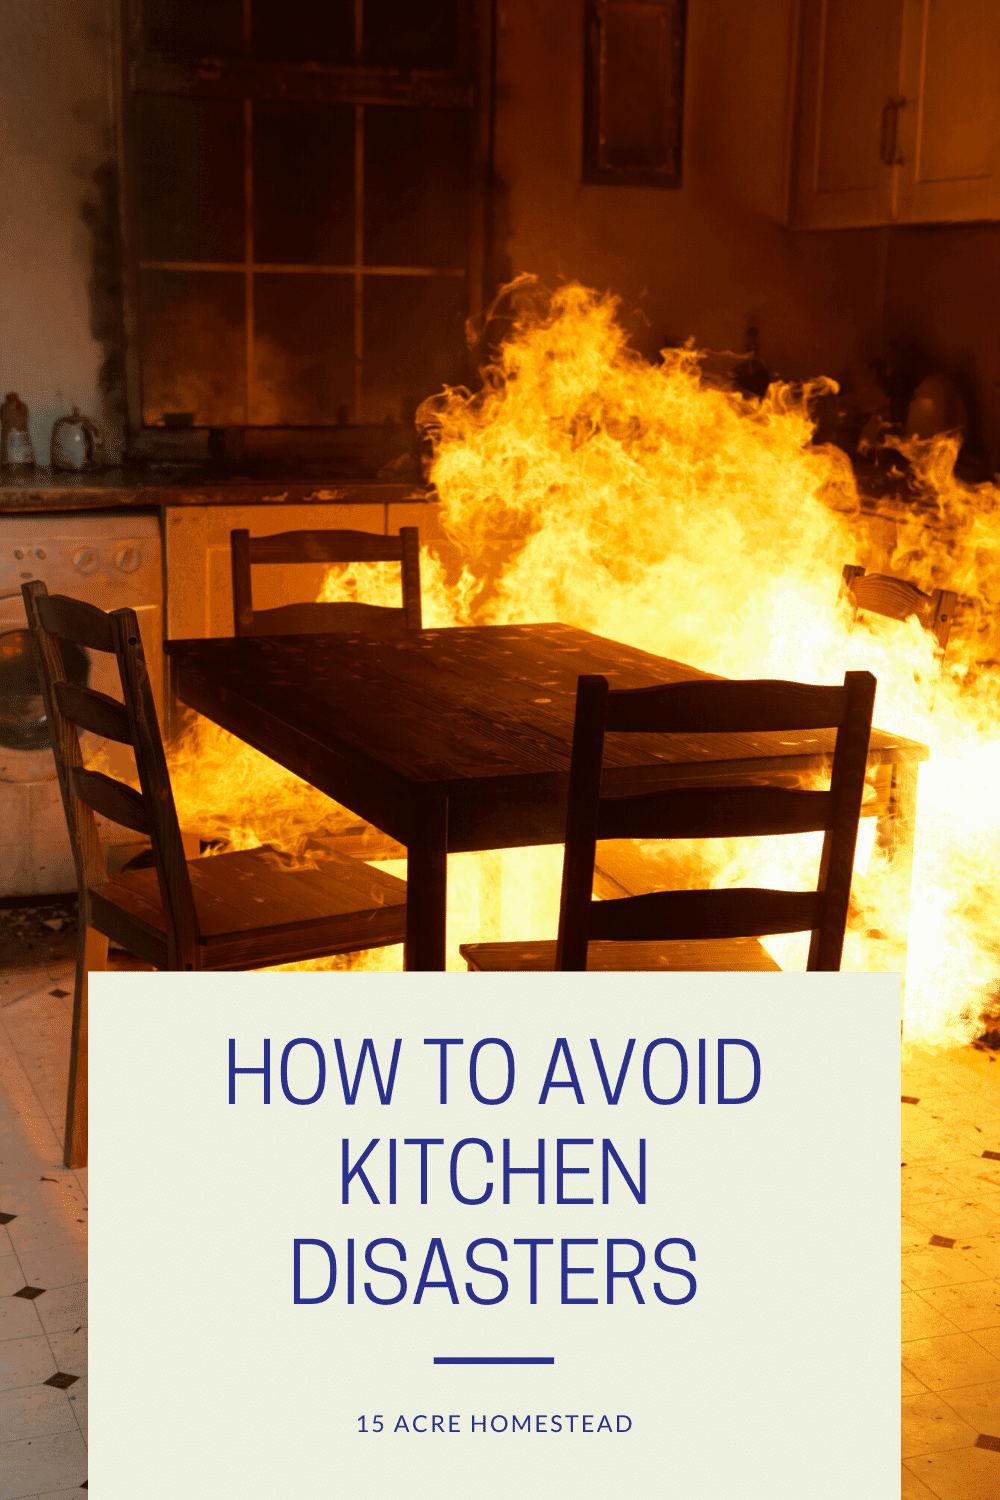 Use these simple tips to avoid kitchen disasters in your home.